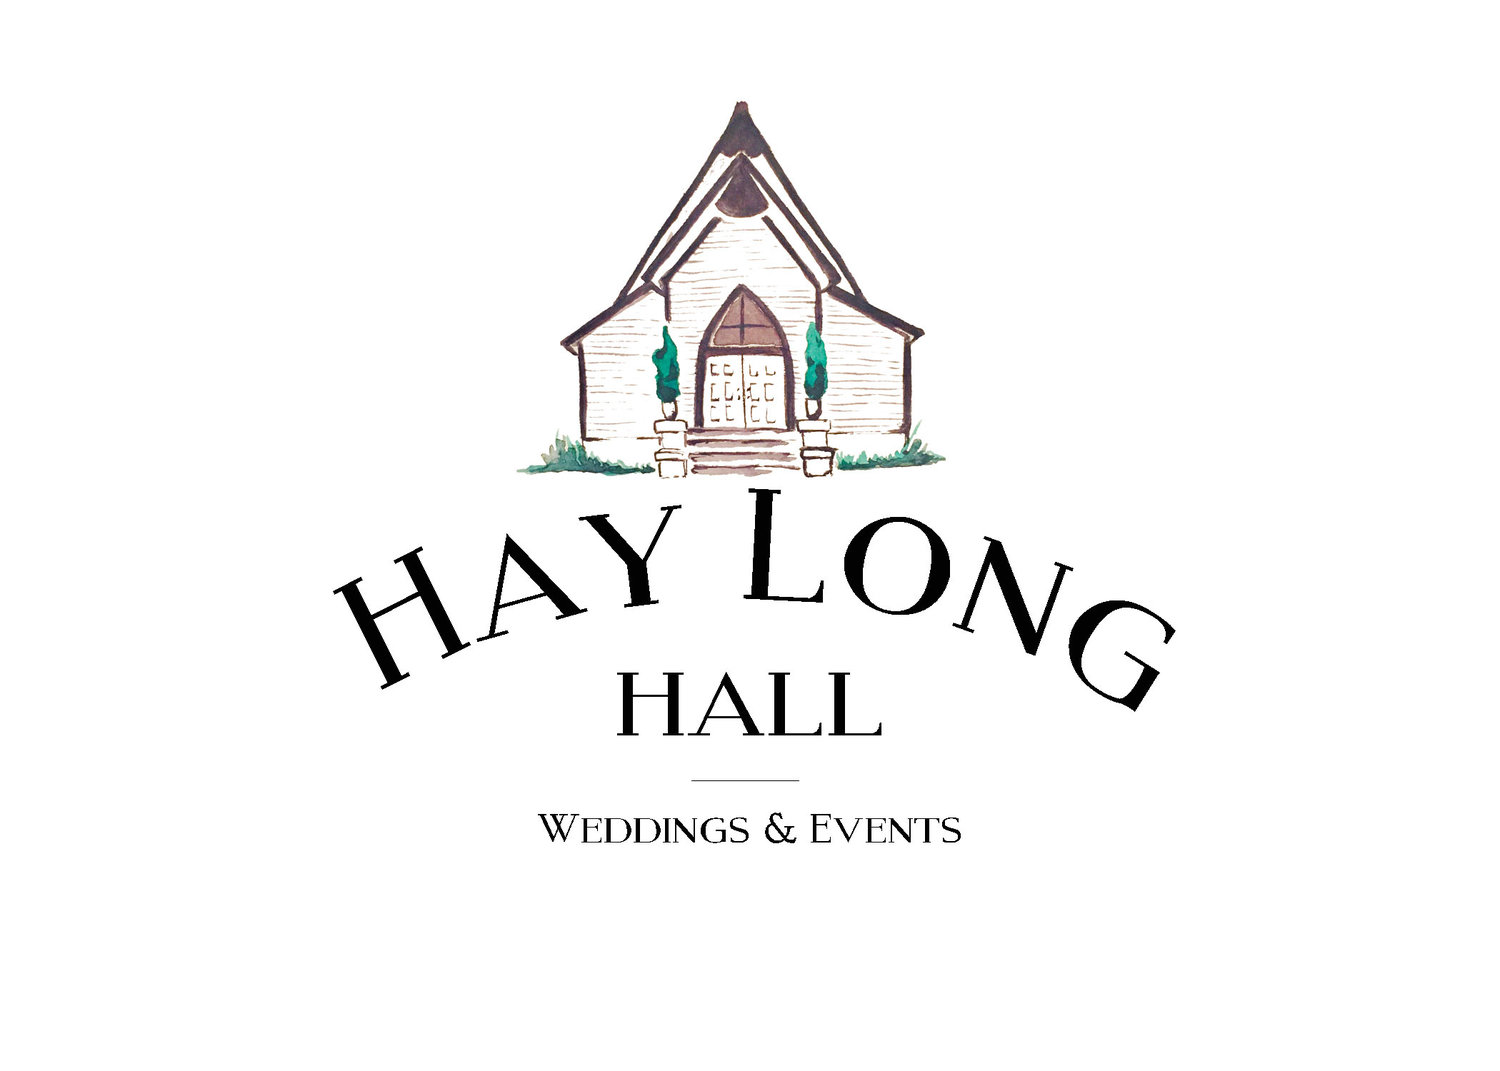 HAY LONG HALL